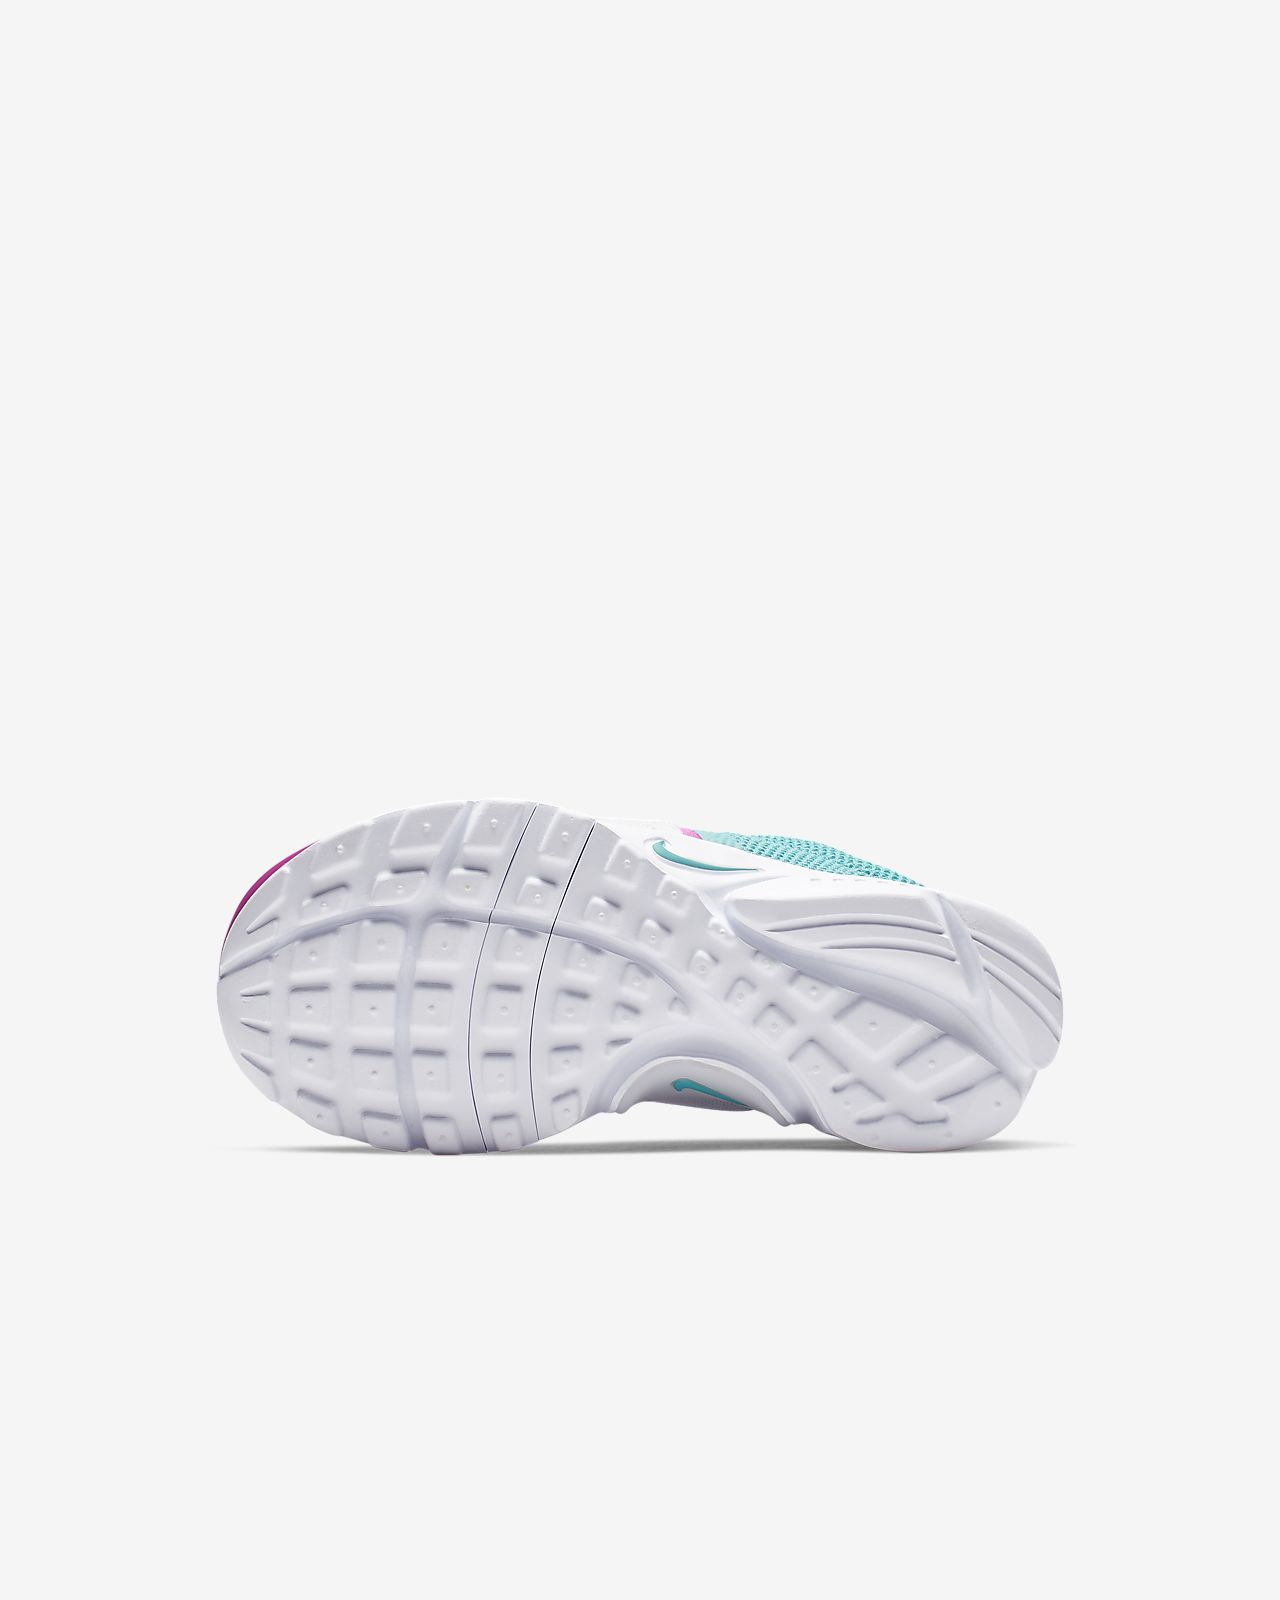 check out 0c54f 48796 ... Nike Presto Extreme Little Kids  Shoe